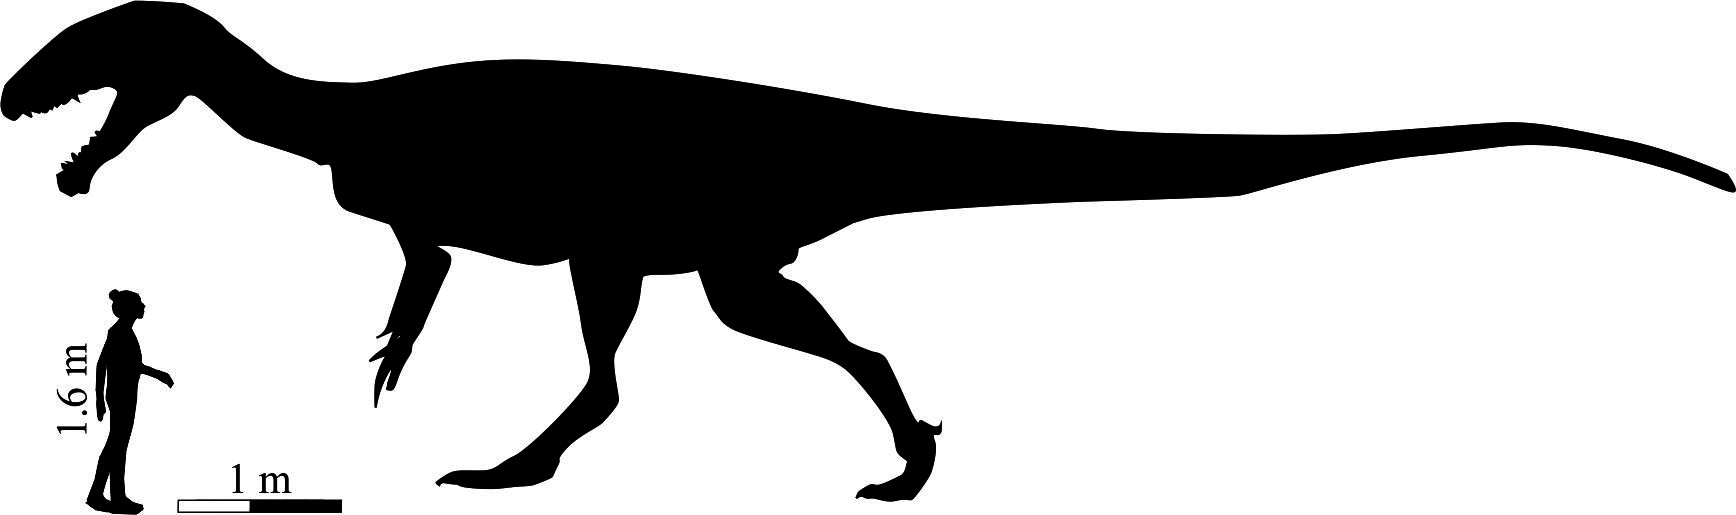 Silhouette of the enormous carnivorous dinosaur that made the Lesotho footprints next to an average human for a sense of scale.